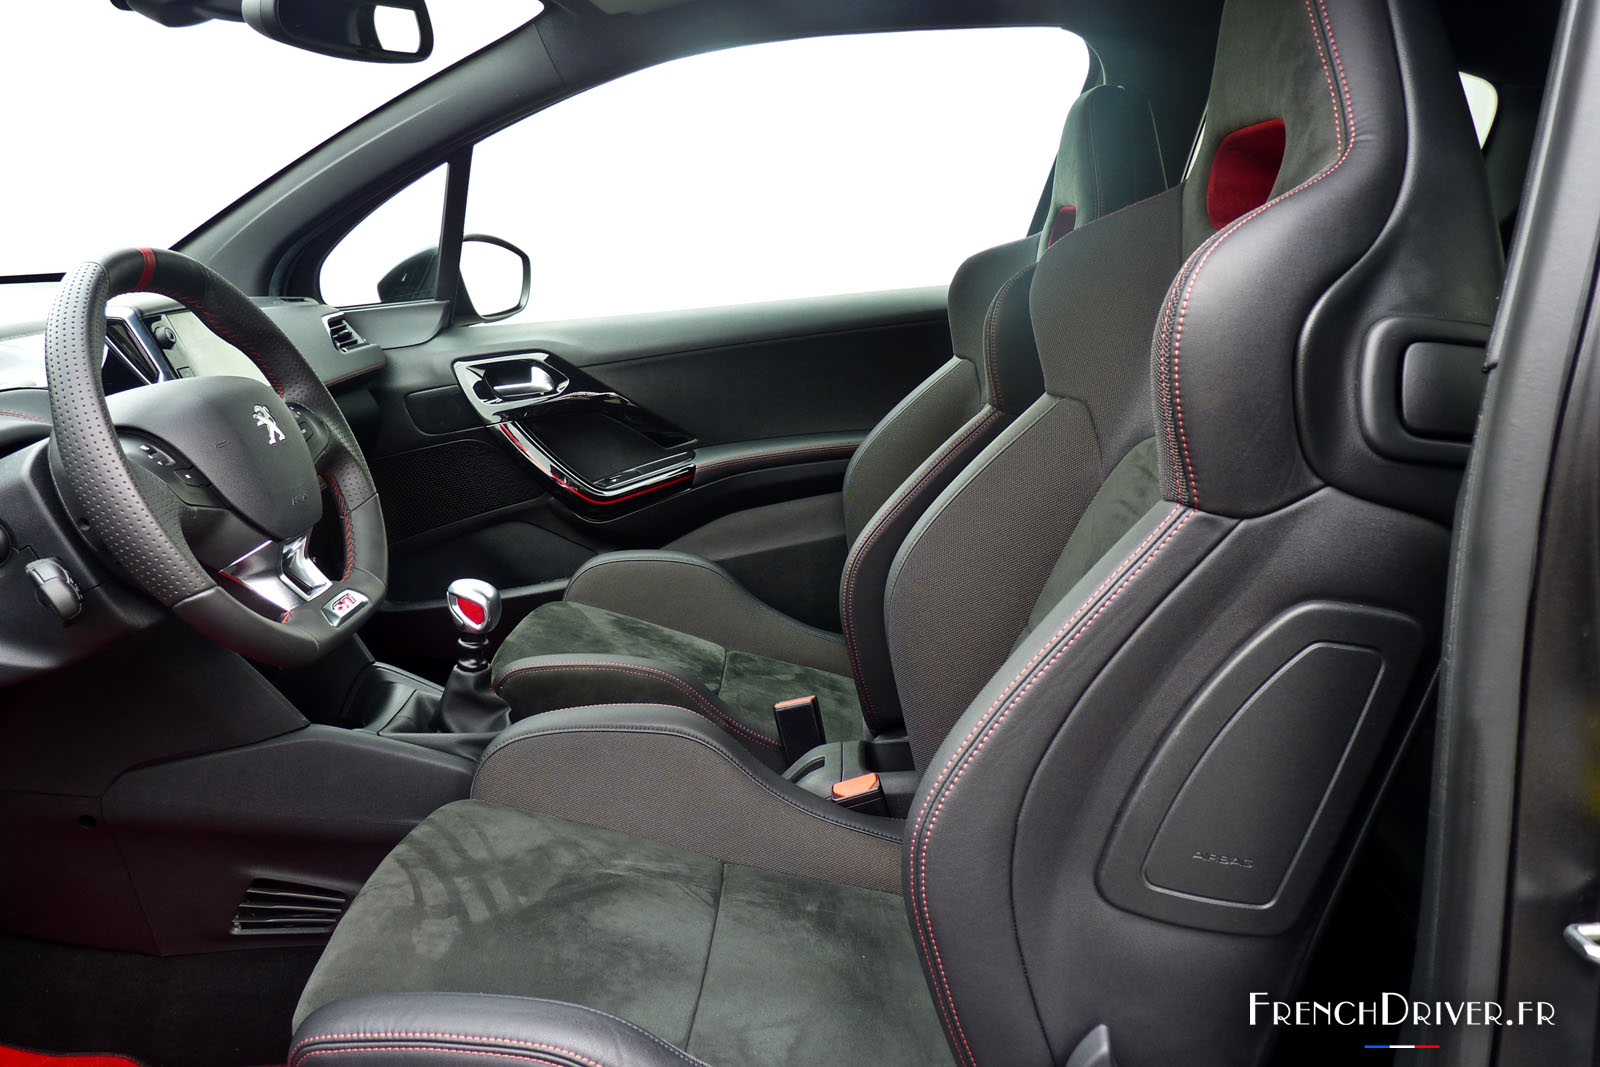 Essai de la peugeot 208 gti 30th l 39 exemple suivre for Photos interieur